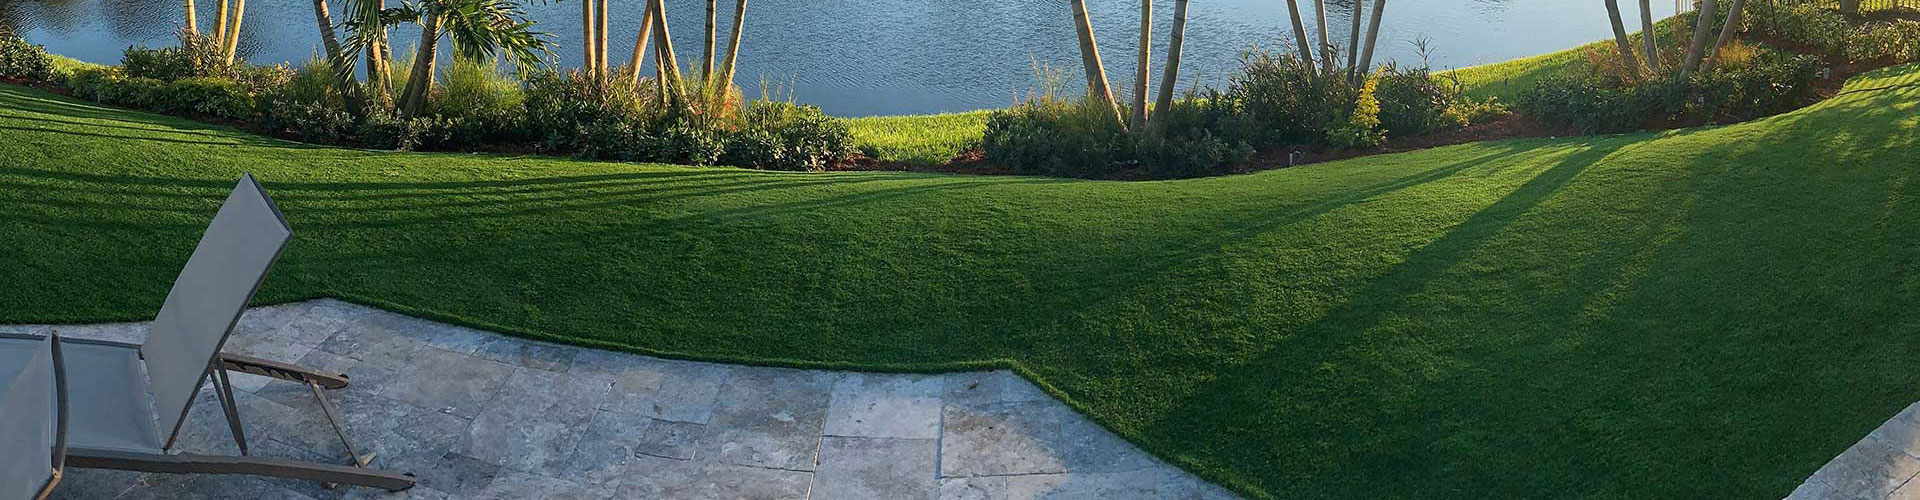 Boca Raton Artificial Grass Installation, Putting Greens and Synthetic Turf